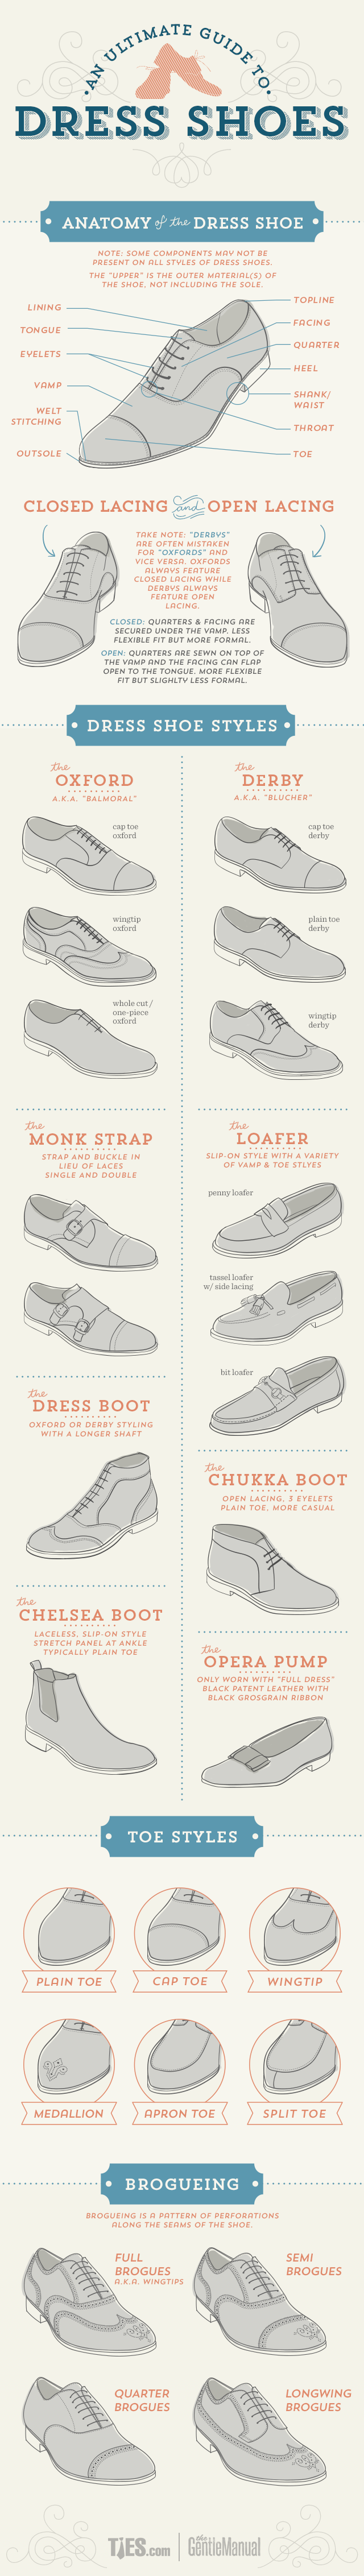 The Ultimate Guide To Mens Dress Shoes Visually